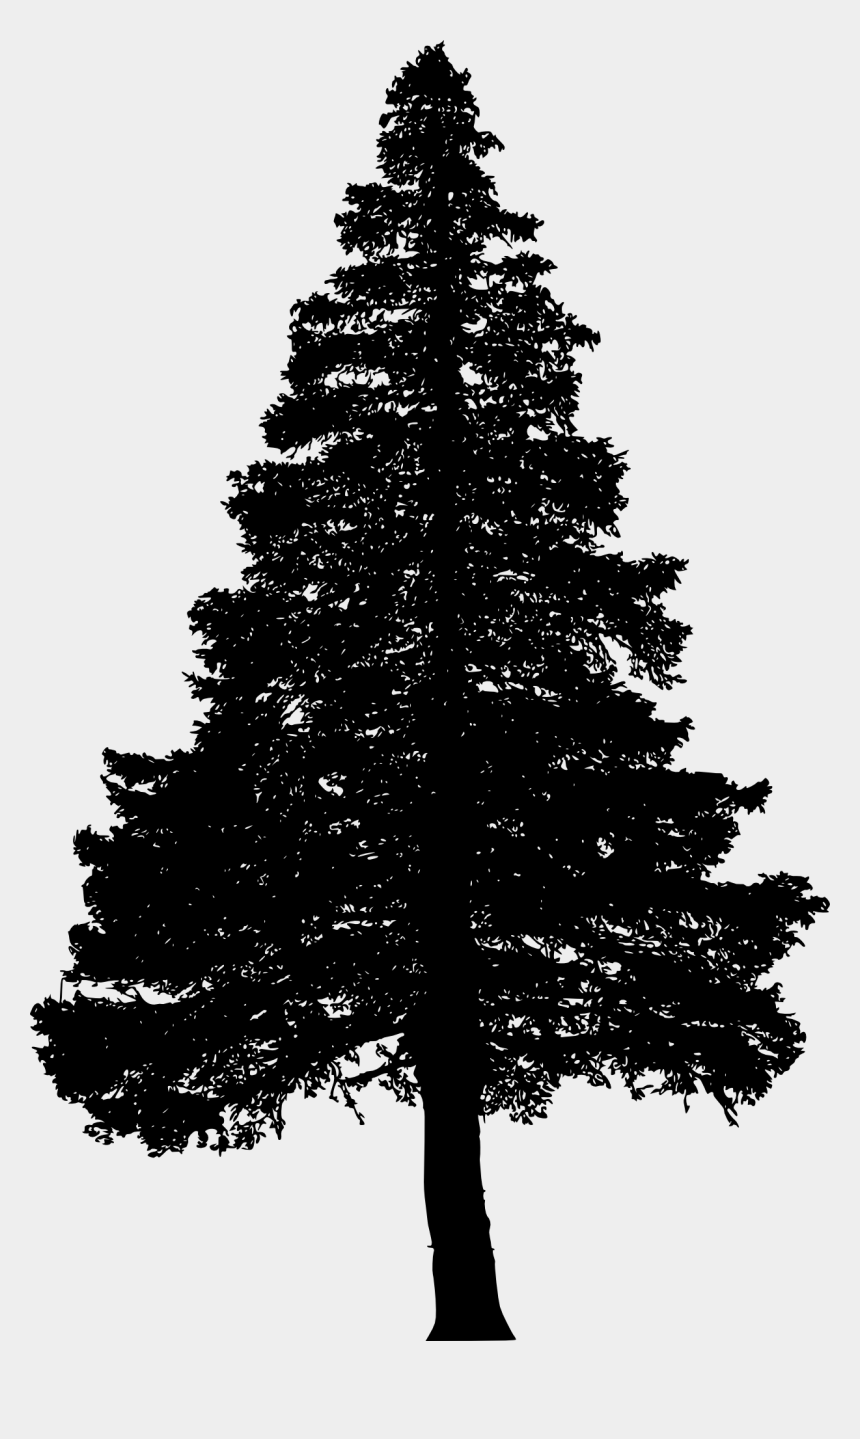 evergreen tree clipart black and white, Cartoons - White Pine Tree White Silhouette Png - Pine Tree Silhouette Png